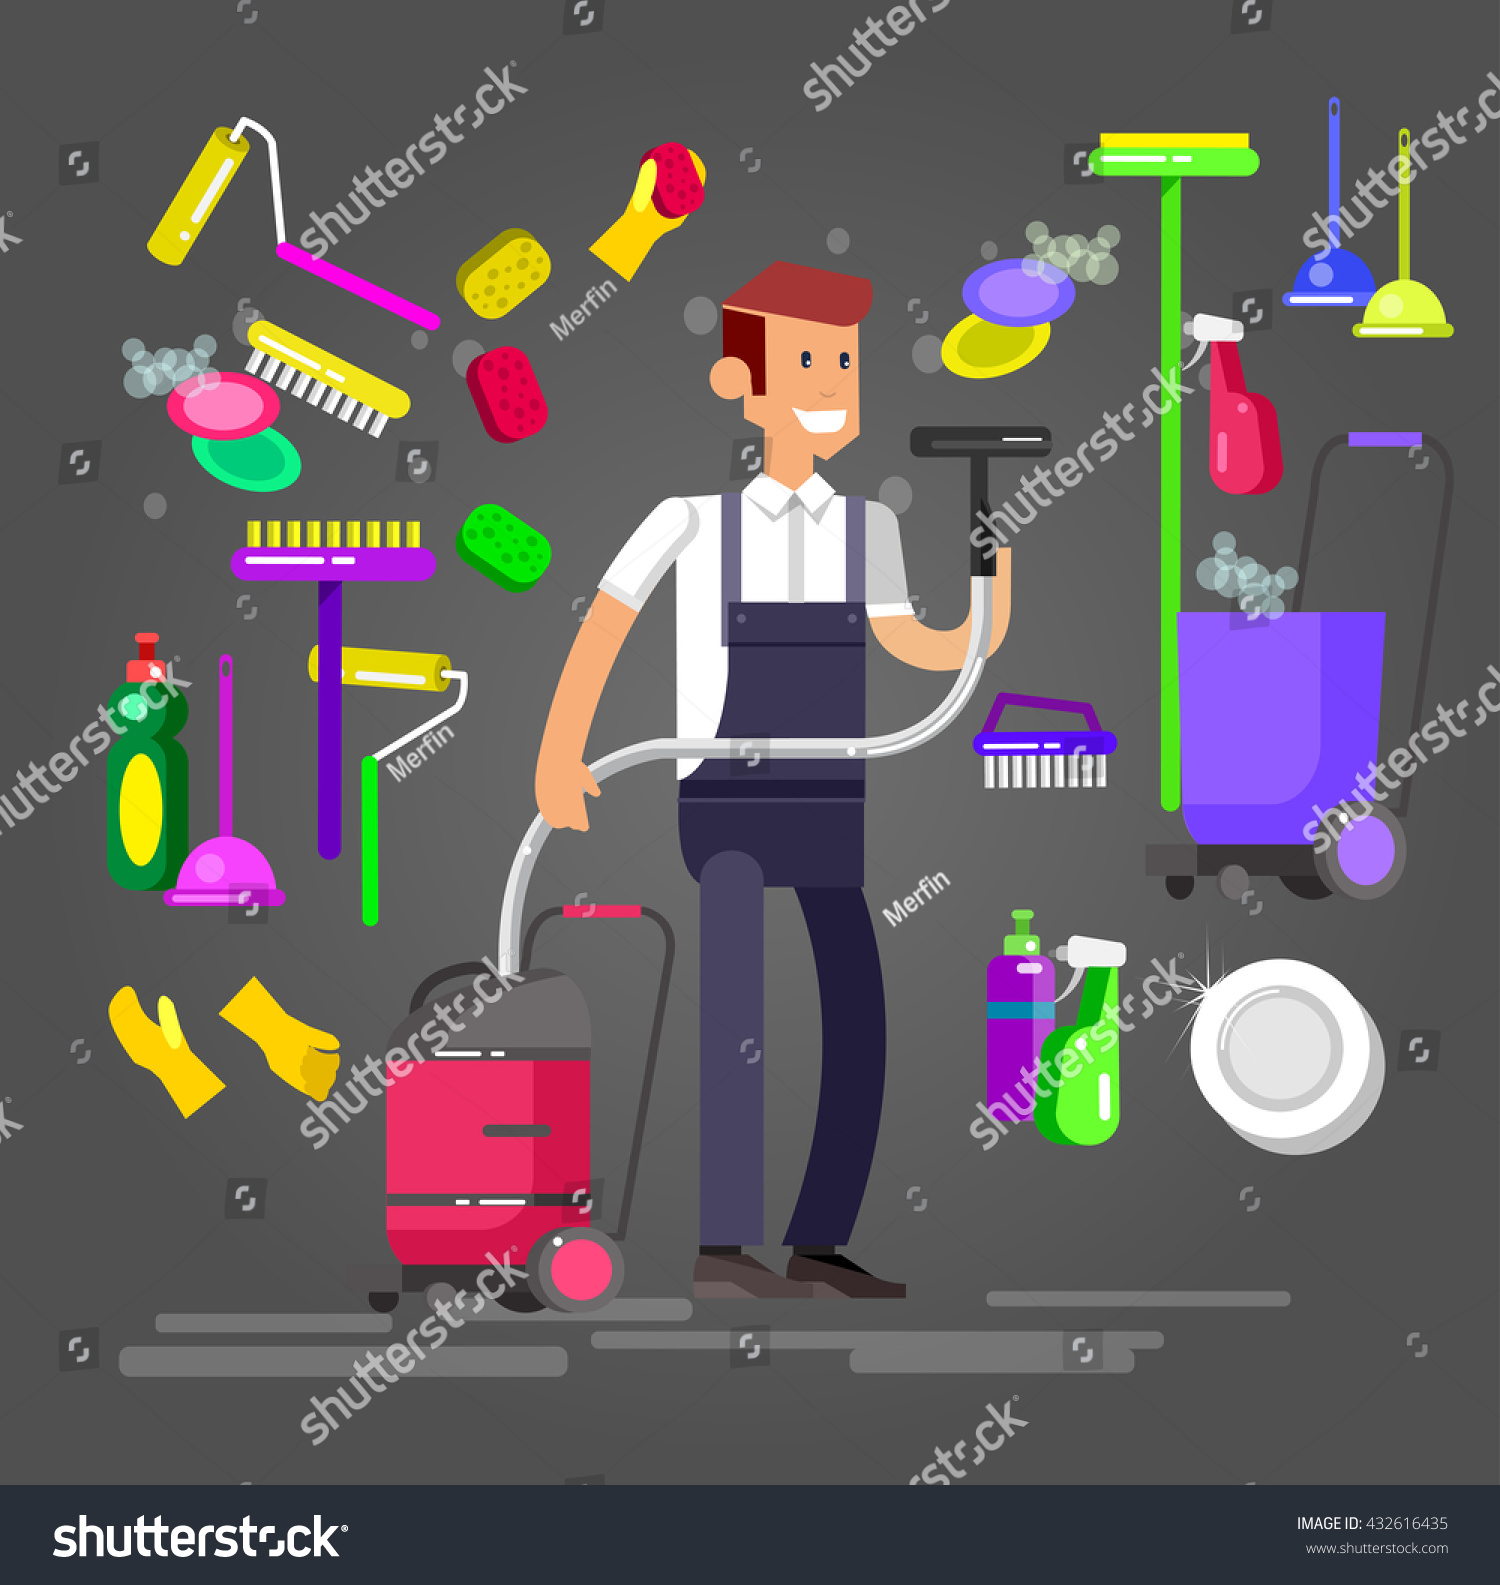 Poster design kit - Poster Design For Cleaning Service And Supplies Vector Detailed Character Professional Housekeeper Cleaning Kit